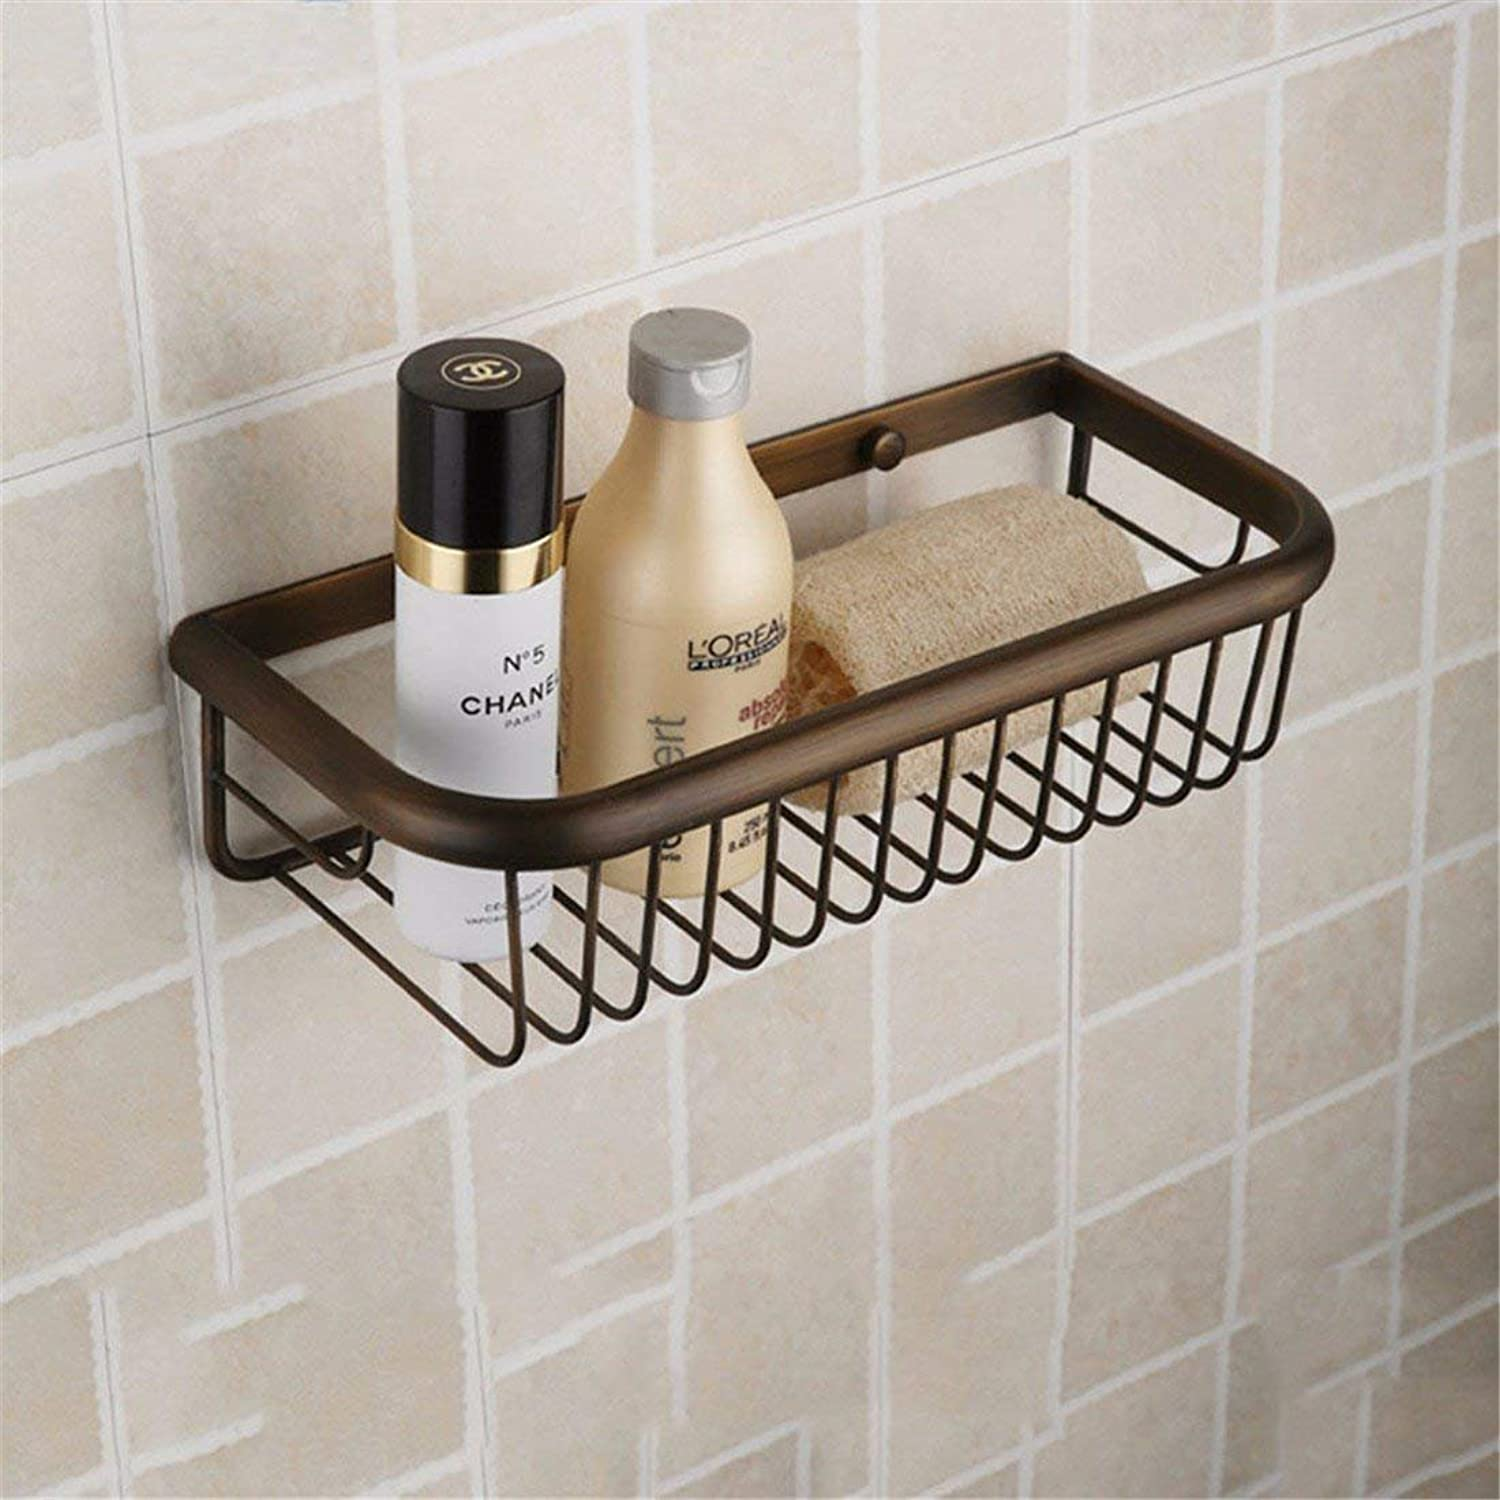 Antique Copper of European Style, Bathroom Accessories with Hair-Towels, Place The Shopping Cart 1